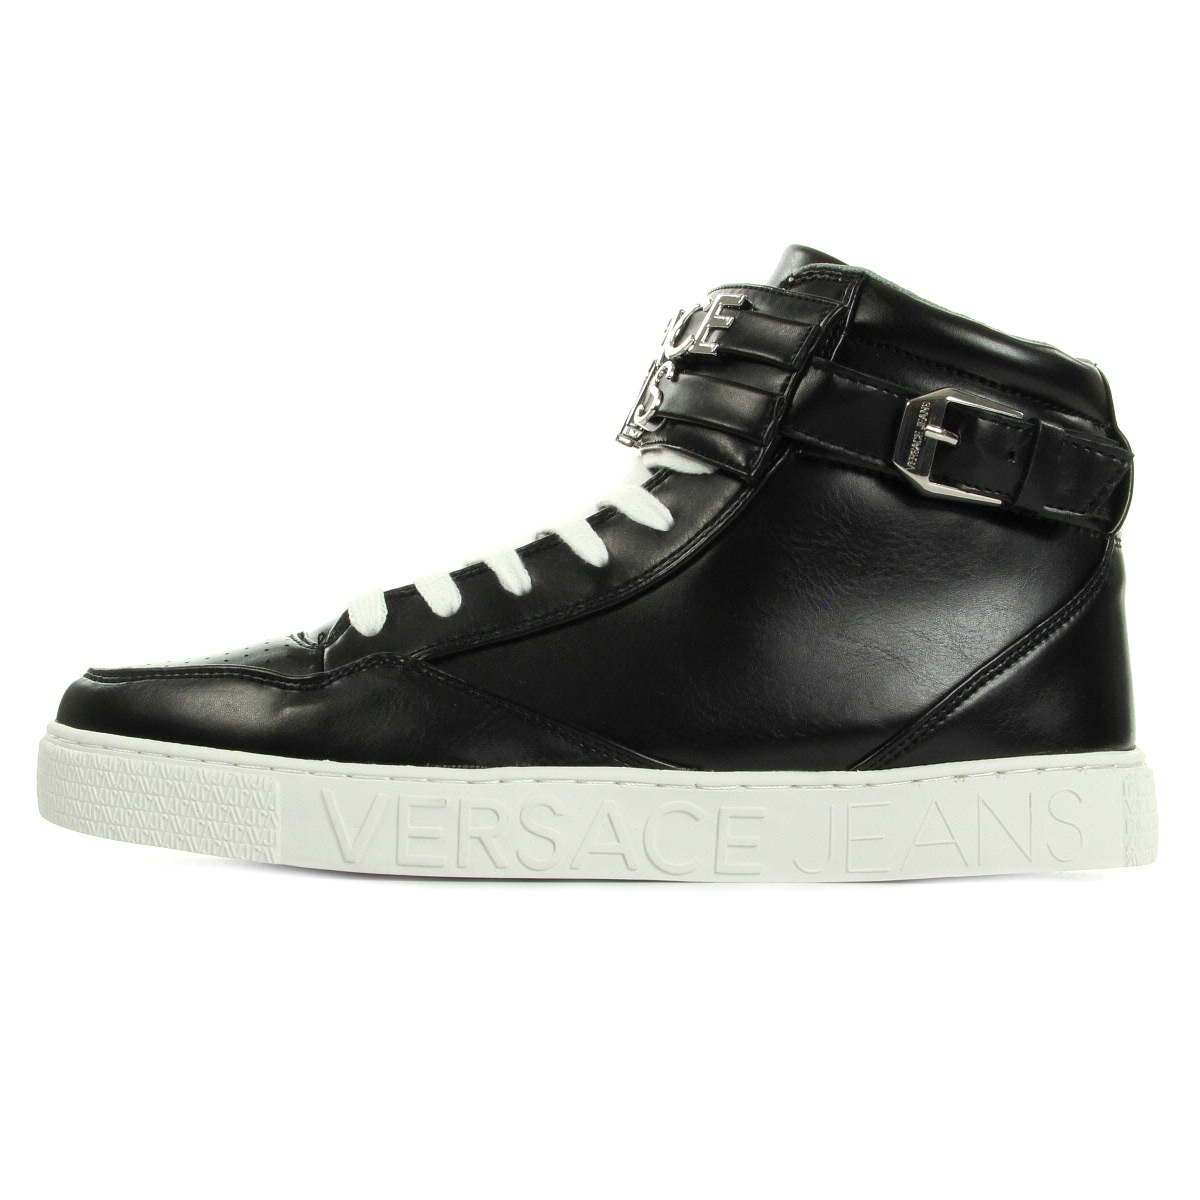 schuhe versace jeans herren sneaker uomo dise5 lettering coating schwarz. Black Bedroom Furniture Sets. Home Design Ideas